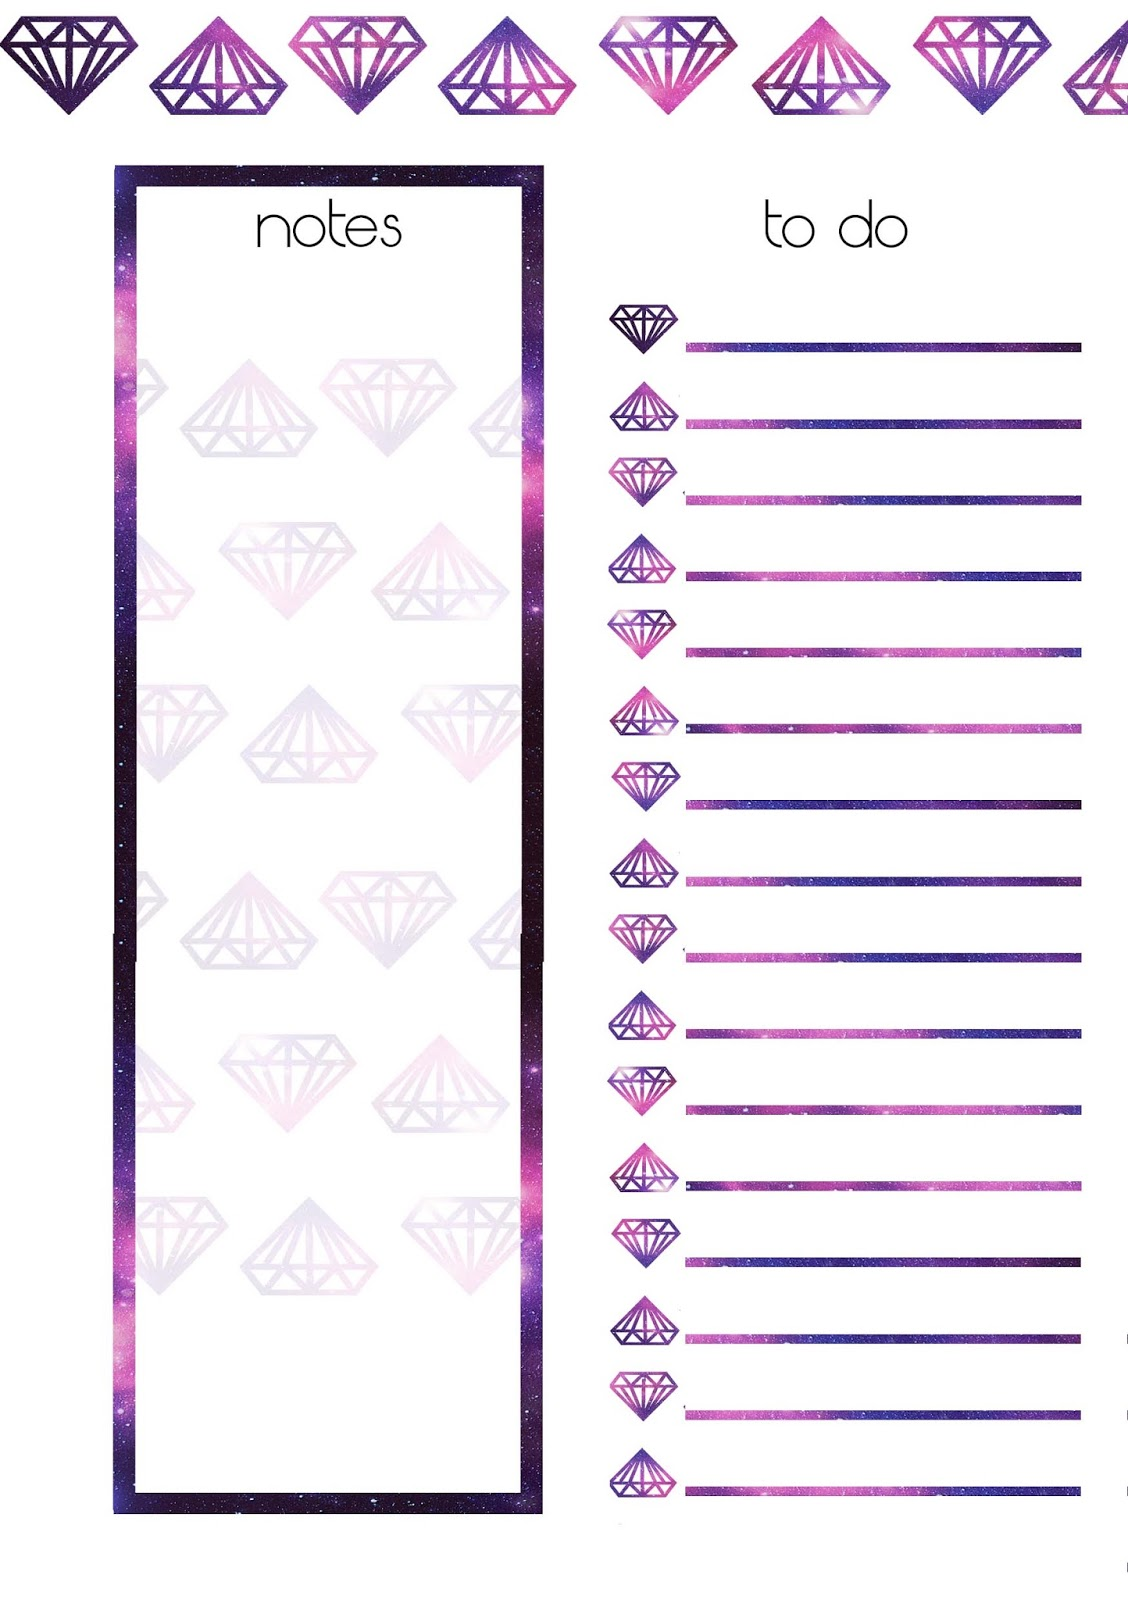 PB and J Studio: Free Printable Planner Inserts | GALAXY ...